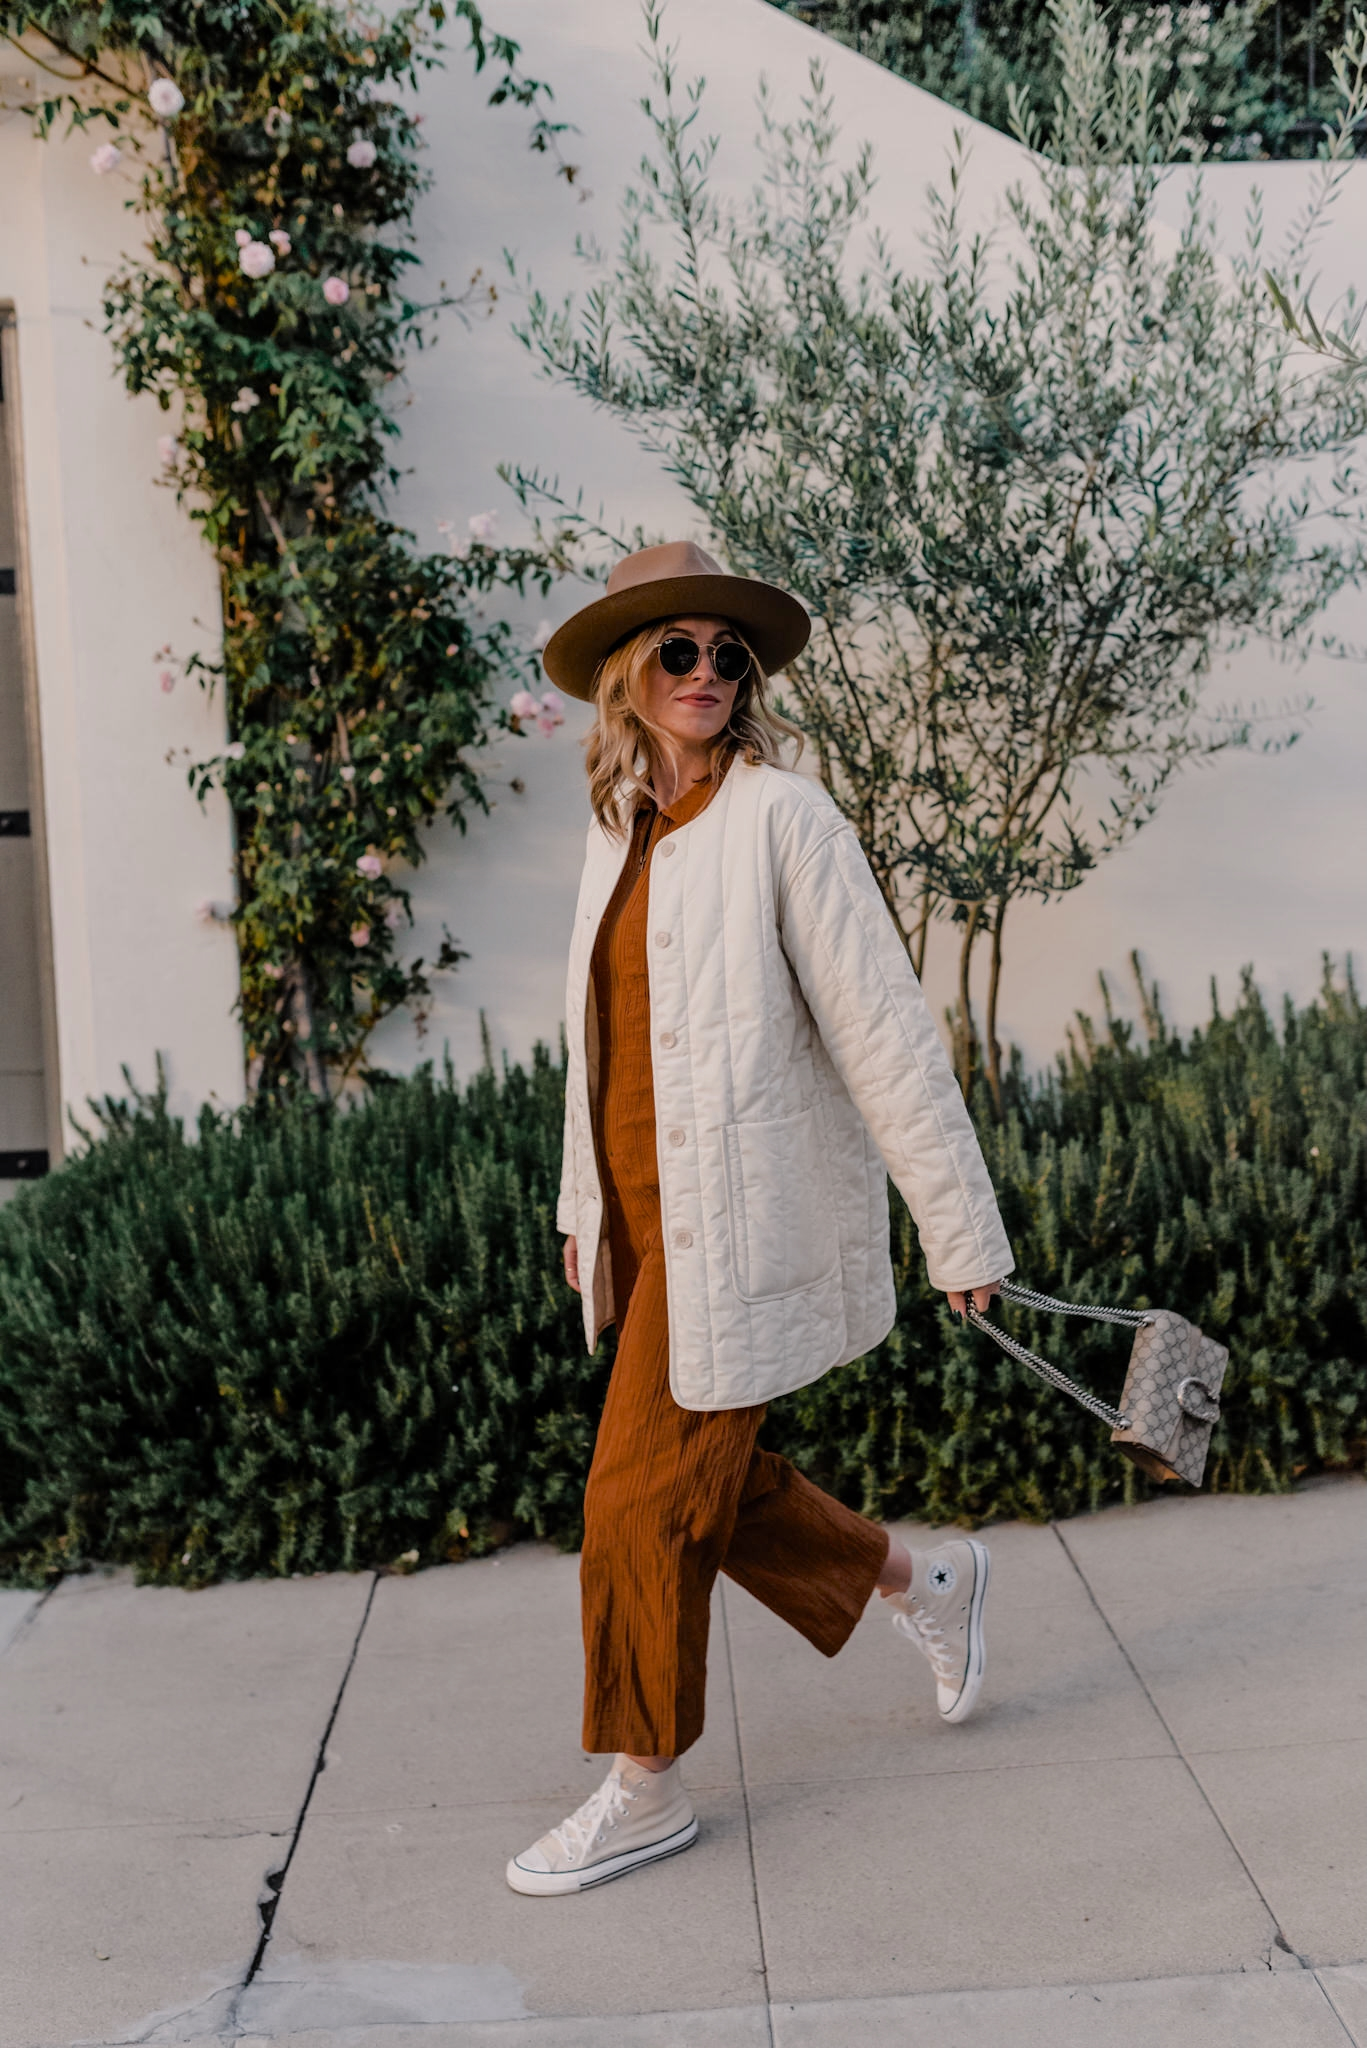 New Arrivals by popular San Diego fashion blog, Navy Grace: image of a woman wearing a White Quilted Jacket, Jumpsuit, Converse Sneakers, Fedora Hat, and Handbag.